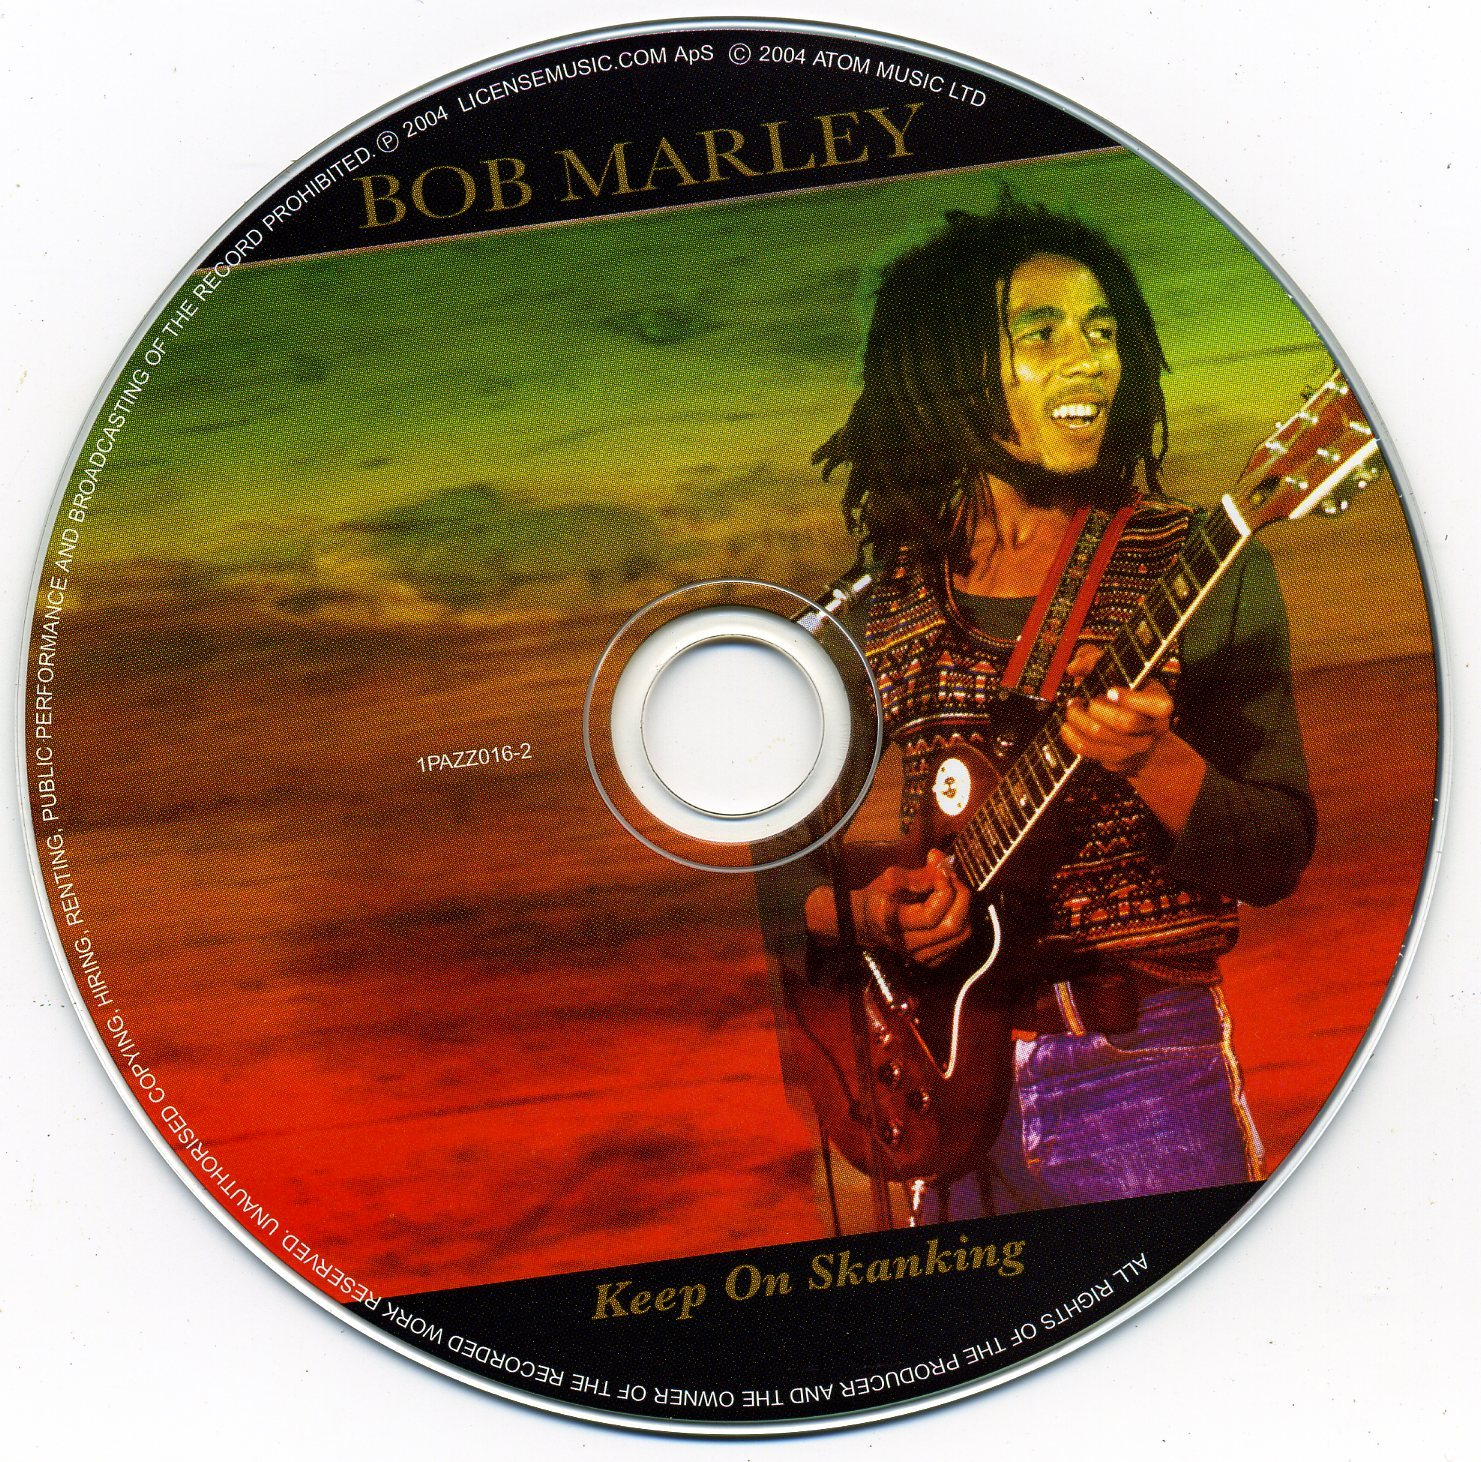 Bob Marley Cry Song Mp3 Download: Bob Marley-African Herbsman 6 CD Box-2005 [MG] 320 Kbps